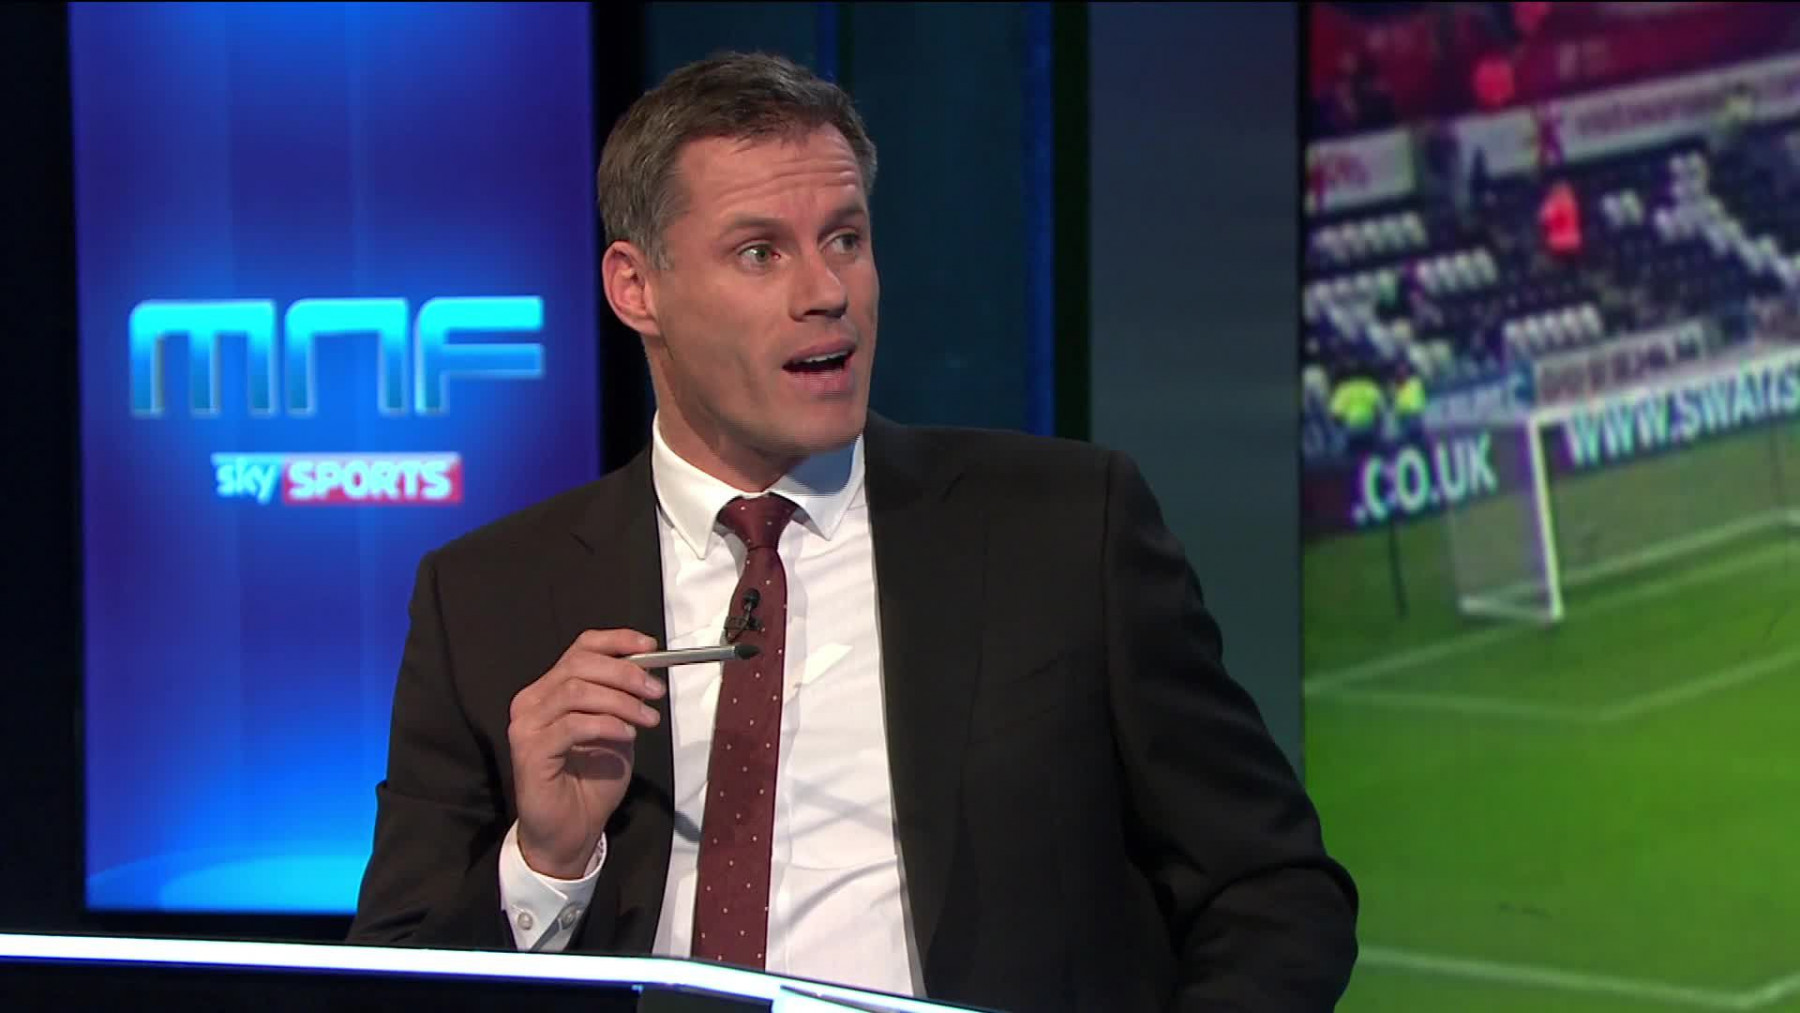 Cops to speak to Jamie Carragher over spit shame as investigation launched